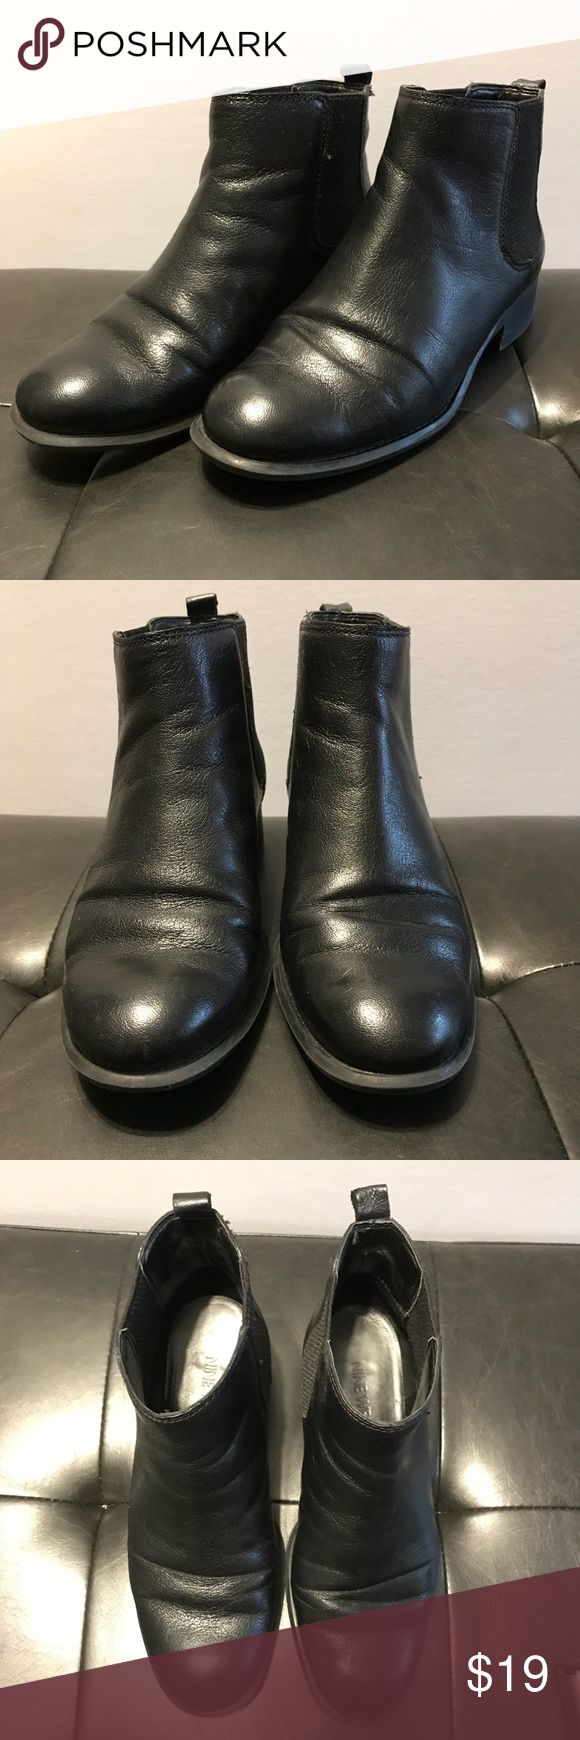 "Nine West Leather Chelsea Boots - Black Nine West - Women's ""Jara"" Leather Chelsea Boots - Black Size US 5 1/2  Slightly Pre-Owned with very little wear. Nine West Shoes Ankle Boots & Booties"